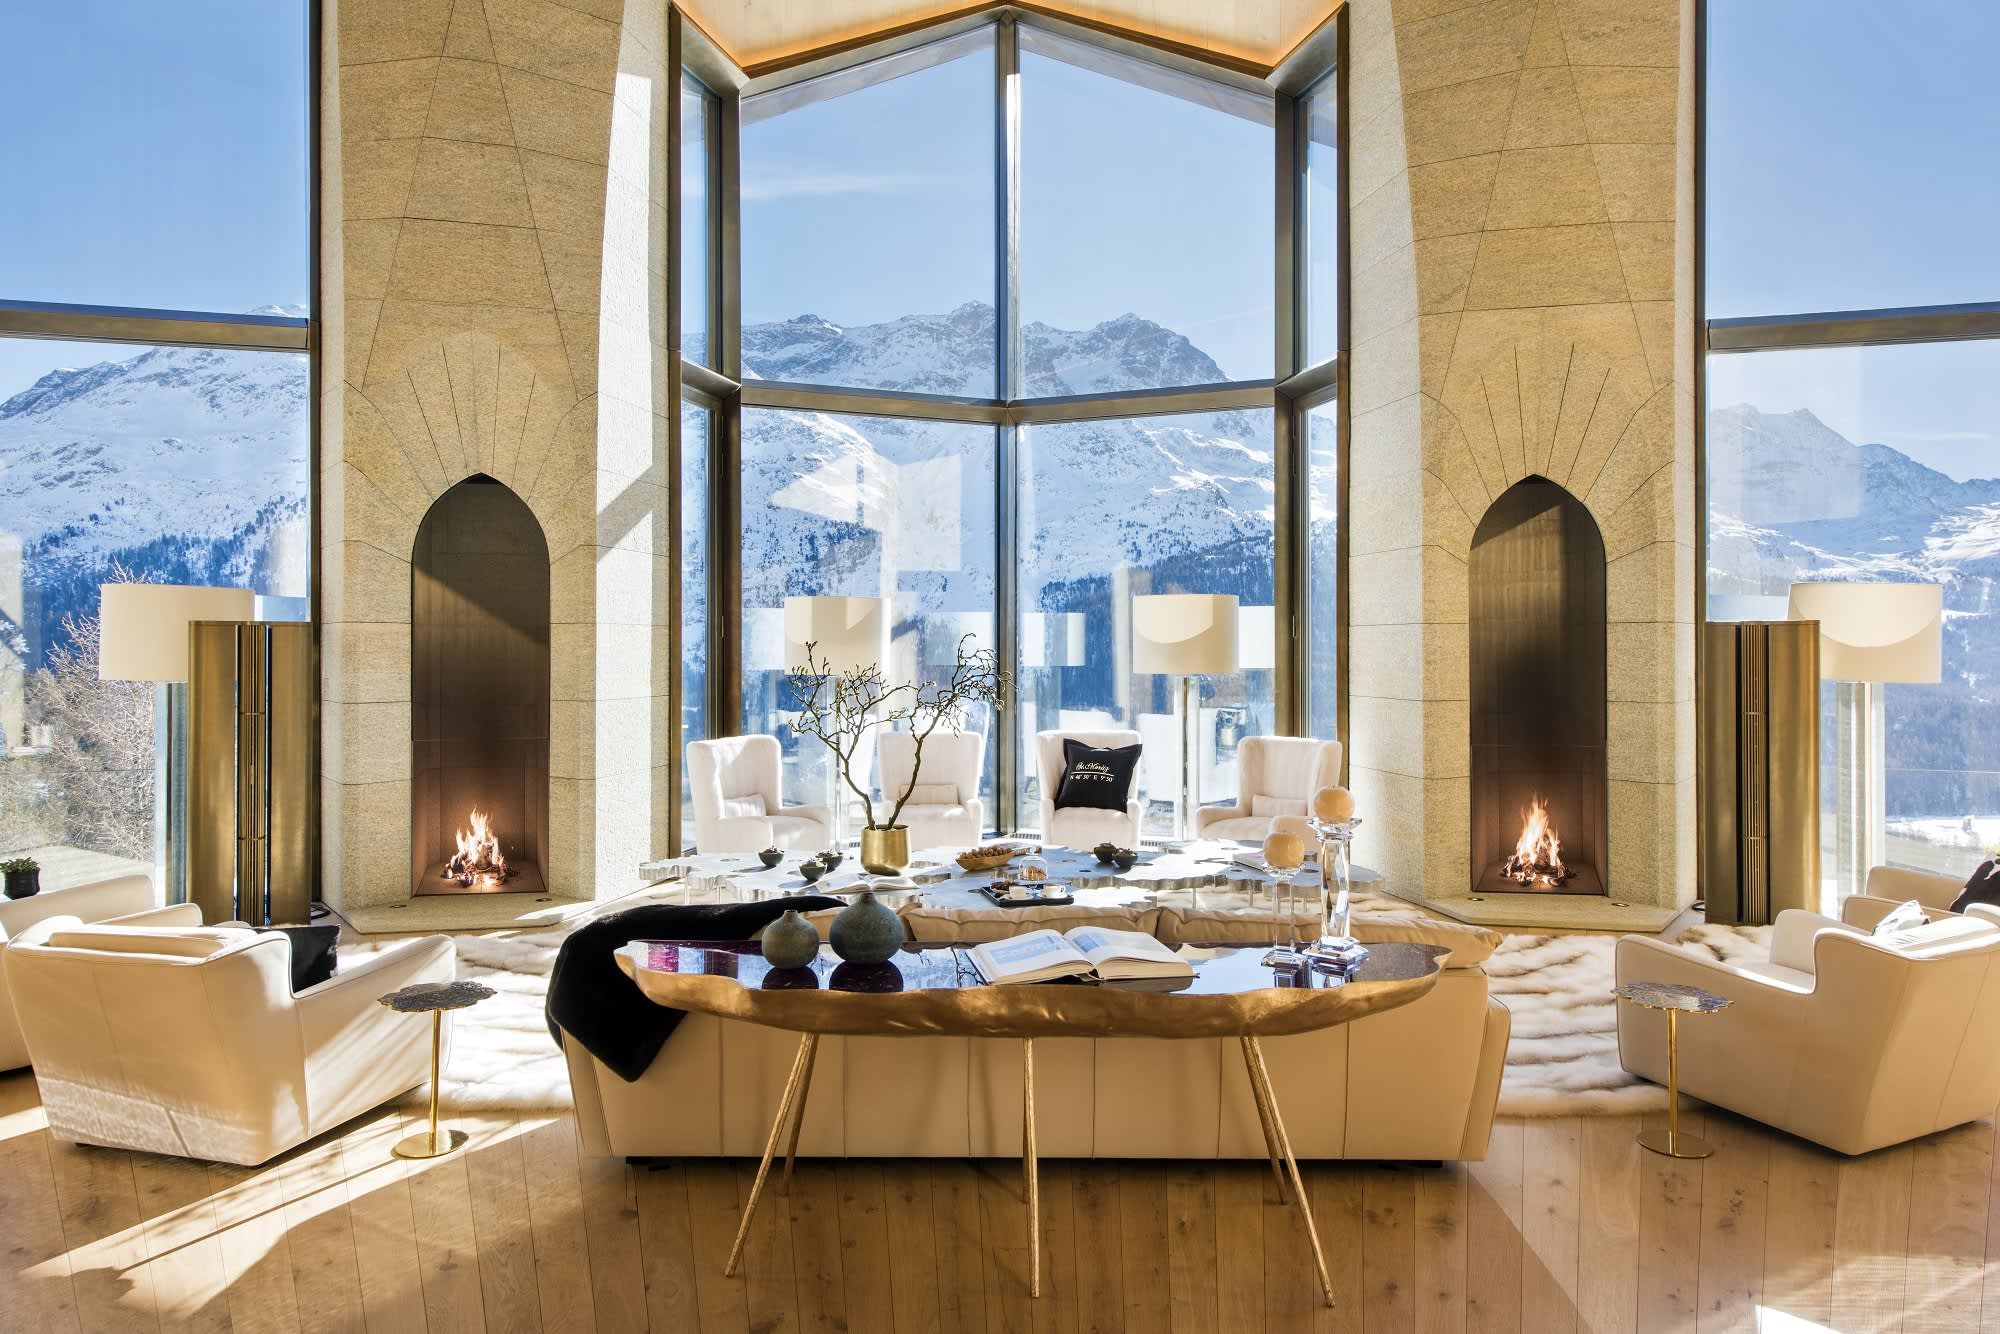 Most Expensive Home In Switzerland Is On The Market For Million - Take a look around the most expensive home in america